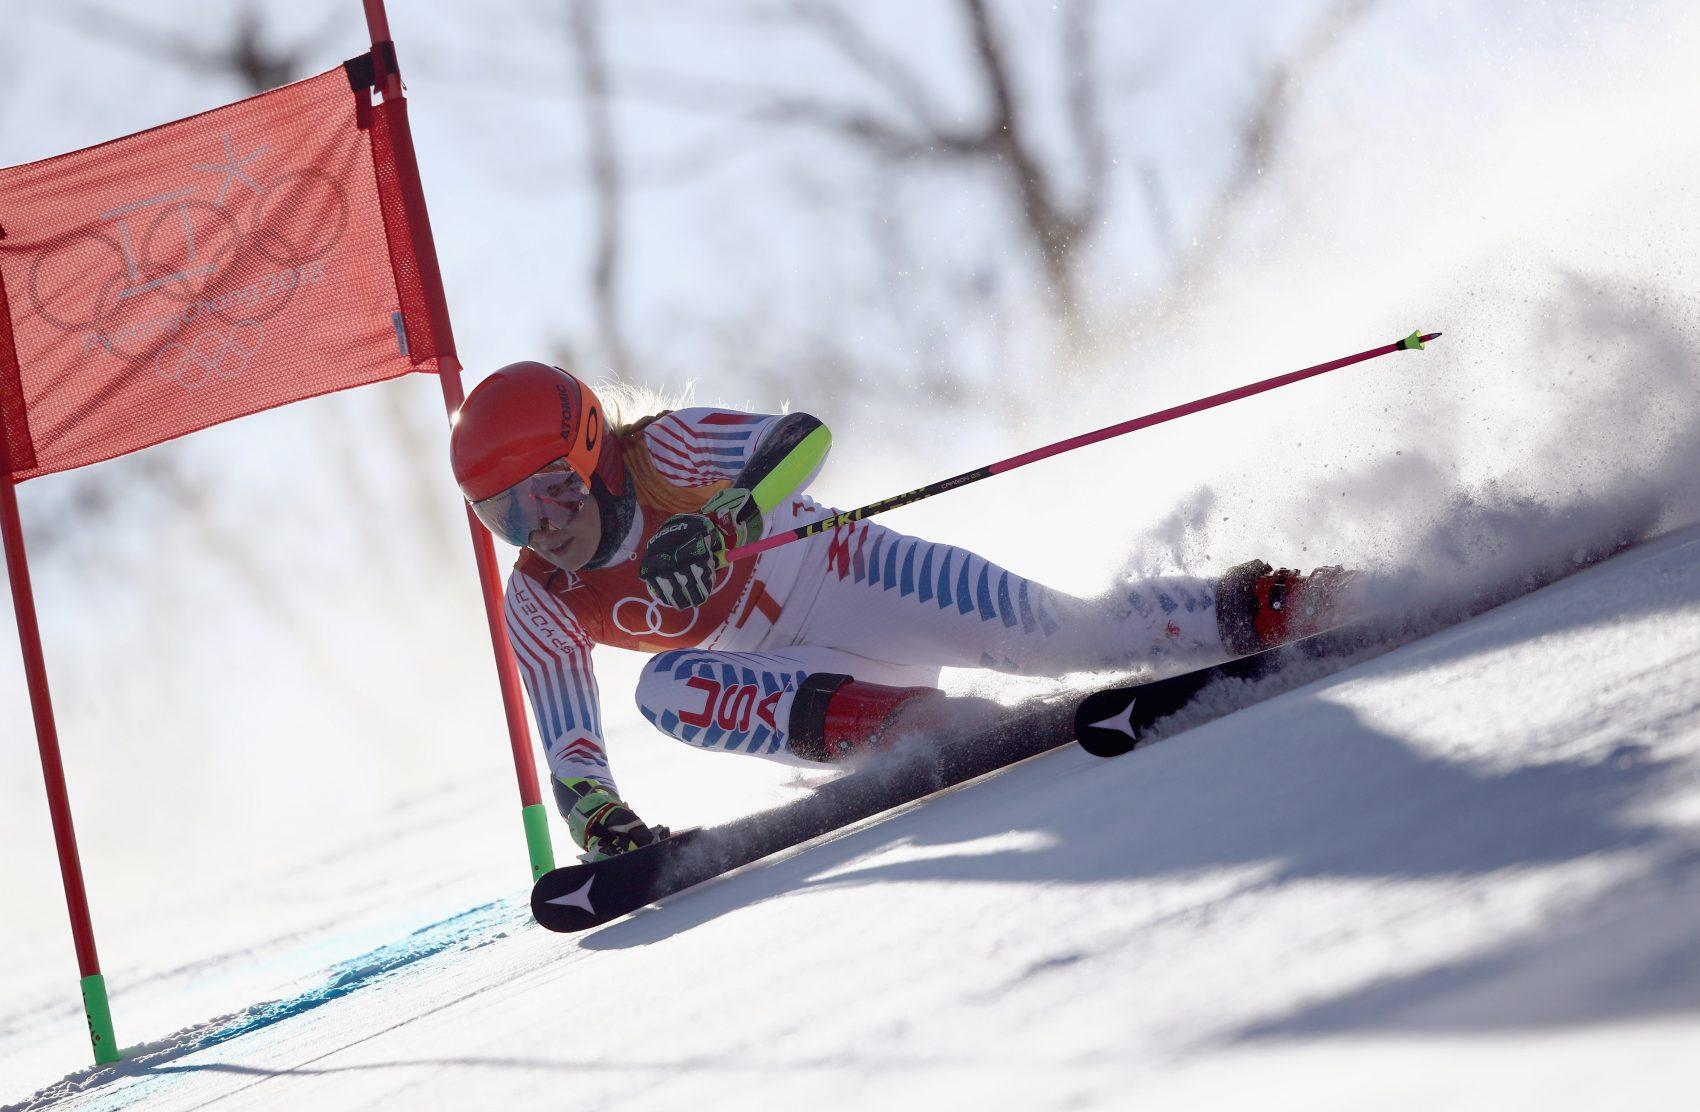 Mikaela Shiffrin earns high marks in flag-holding